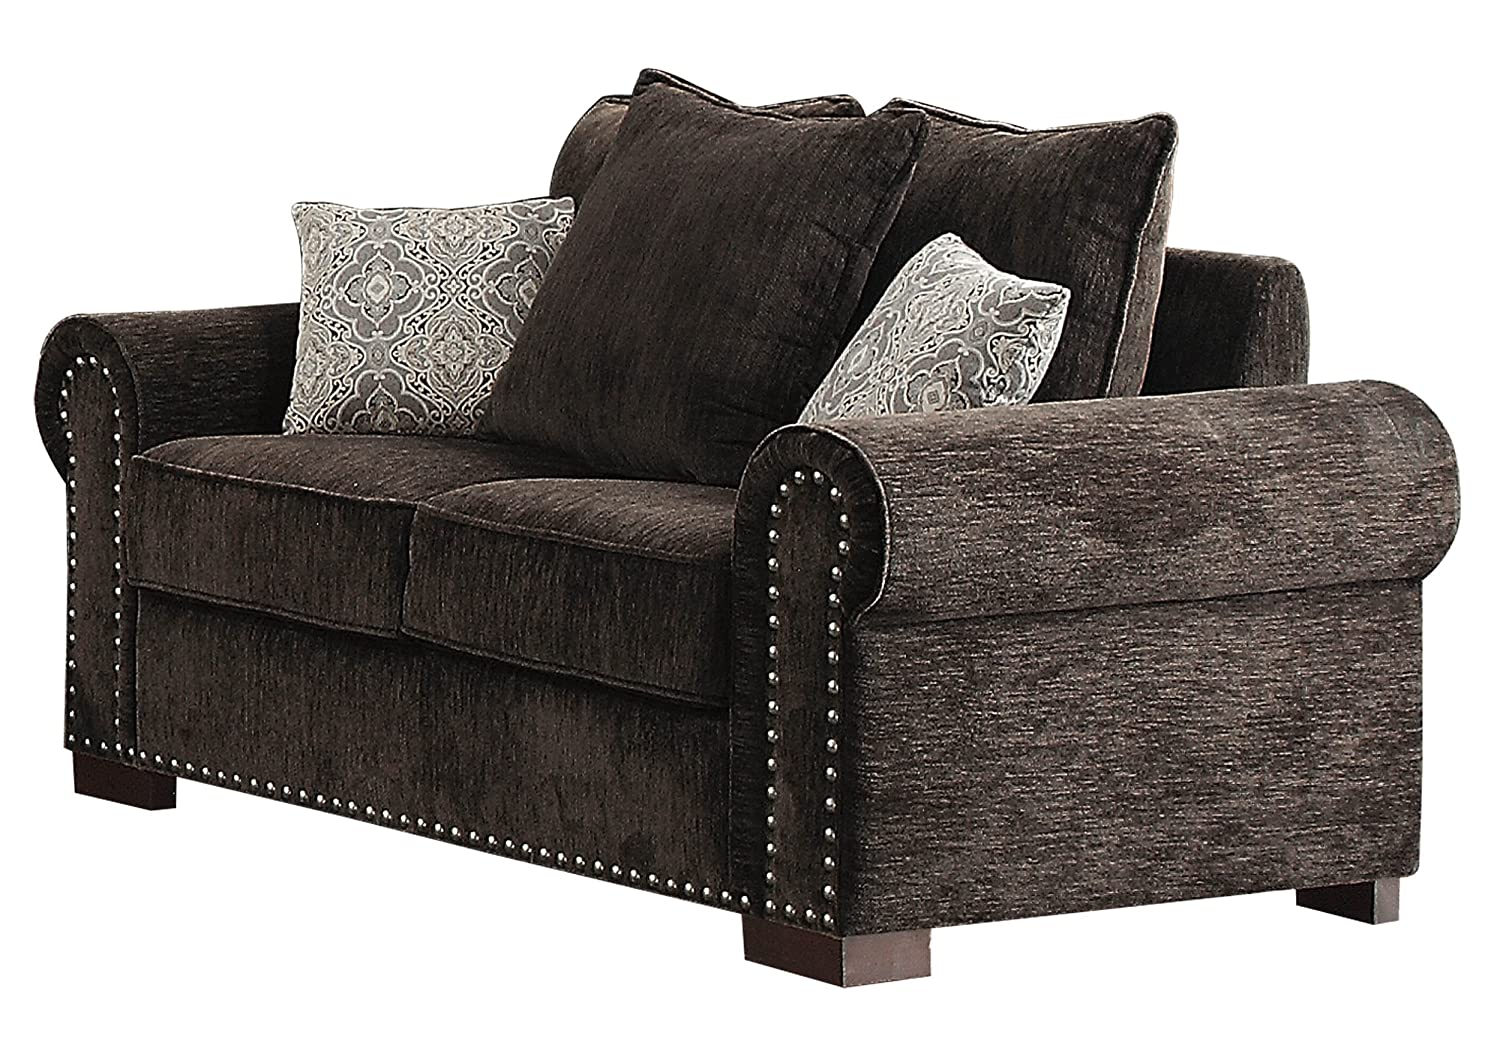 Homelegance Wandal Rolled Arm Scatter Back Pillow Loveseat with Frontal Nailheads Trim - Chocolate